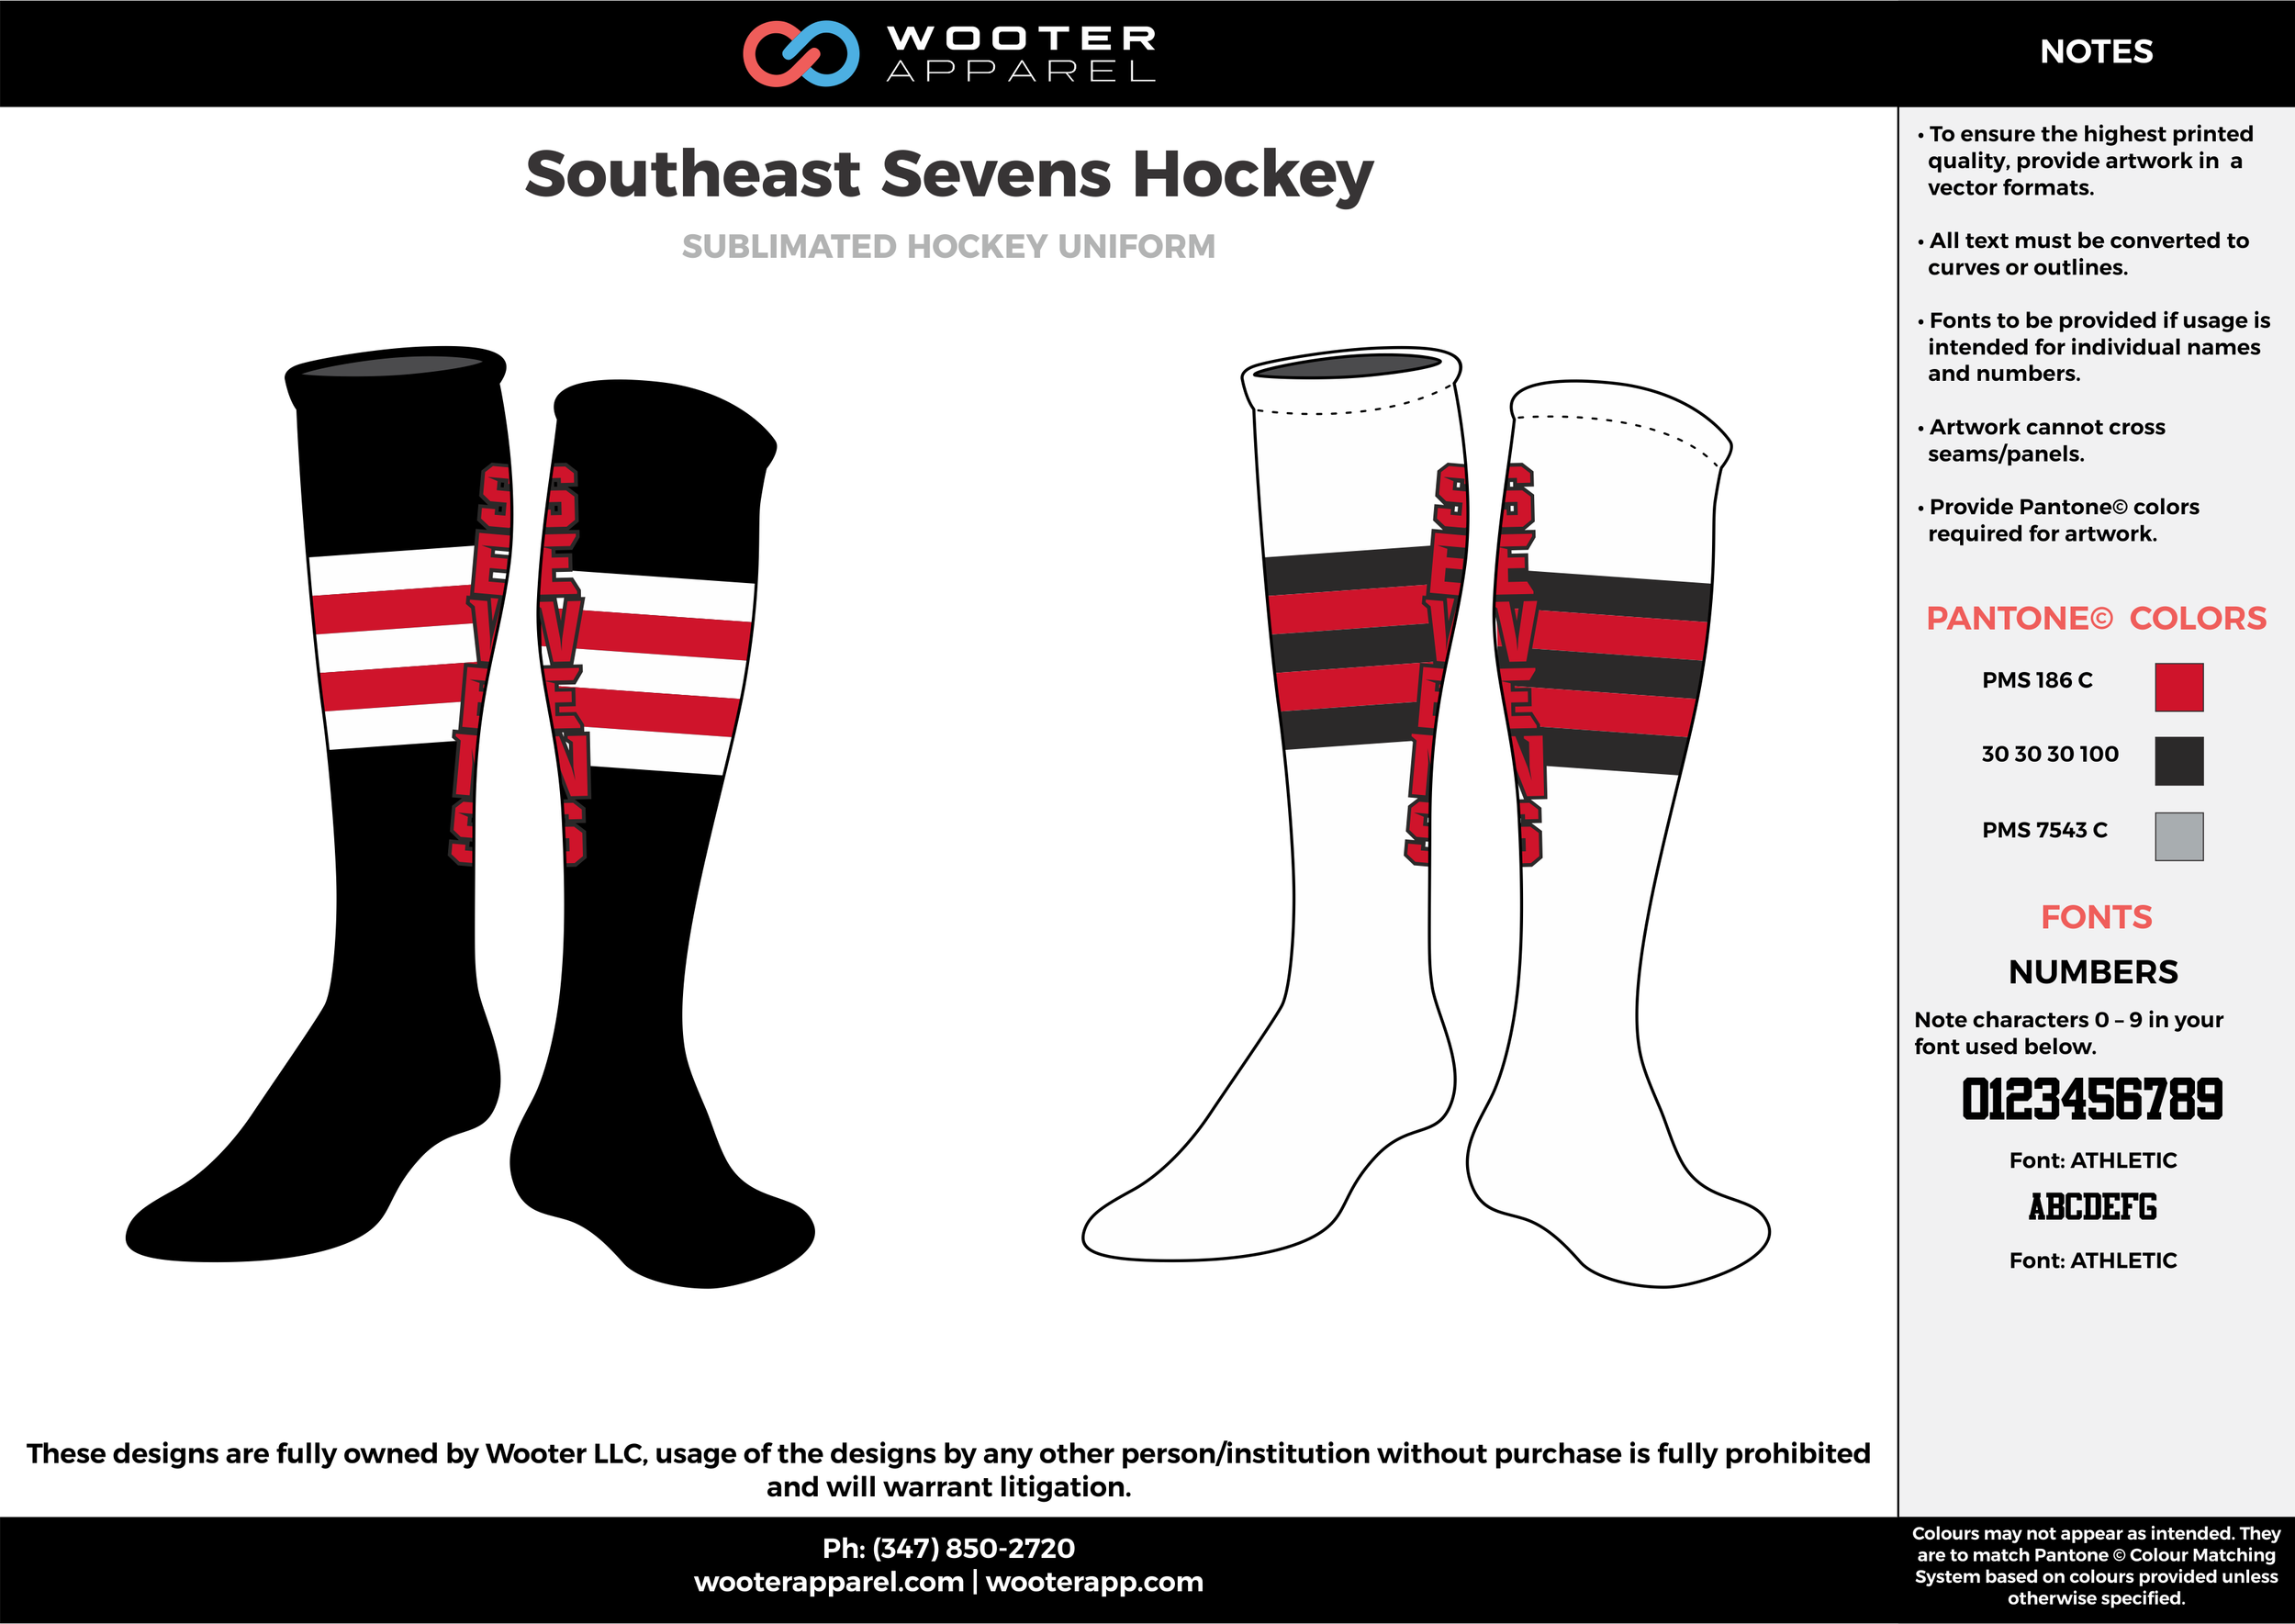 Southeast Sevens Hockey white black red hockey uniforms socks